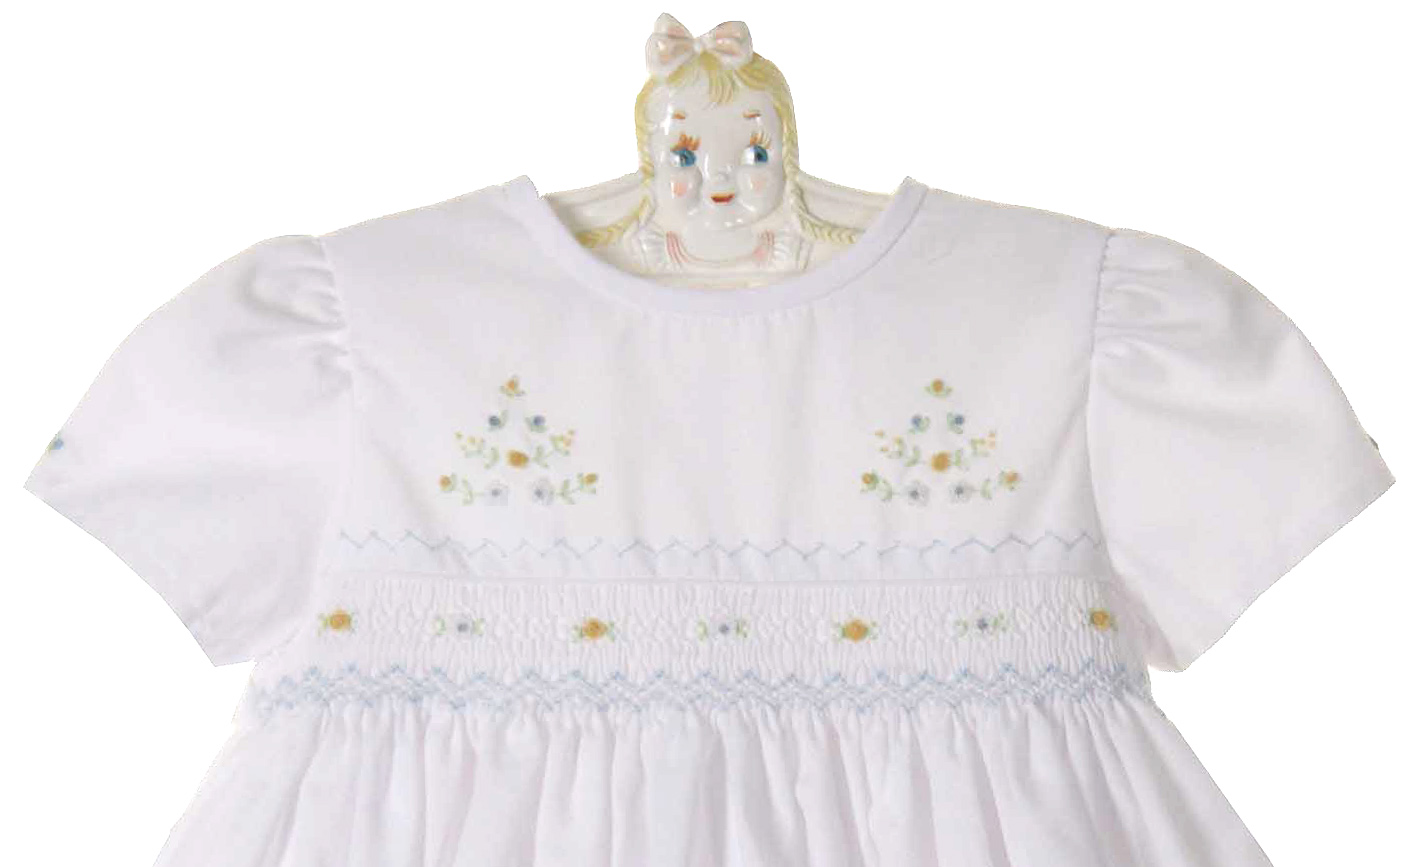 Sarah Louise White Smocked Dress With Blue And Yellow Embroidered